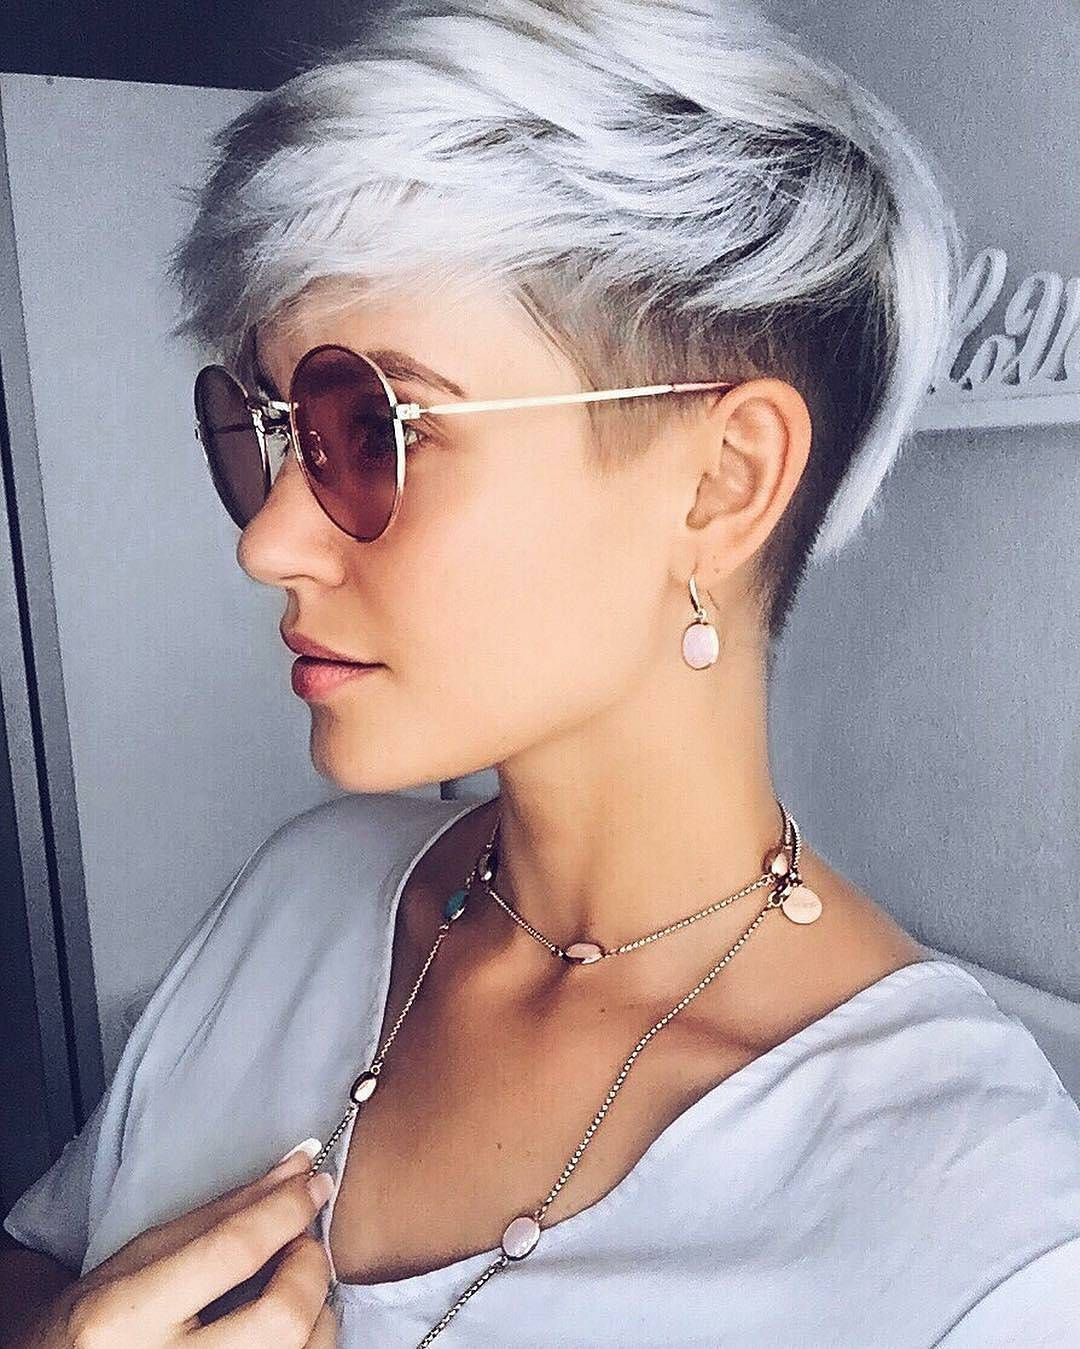 Short más moderno Peinados para mujeres, Easy Pixie Haircut Trends